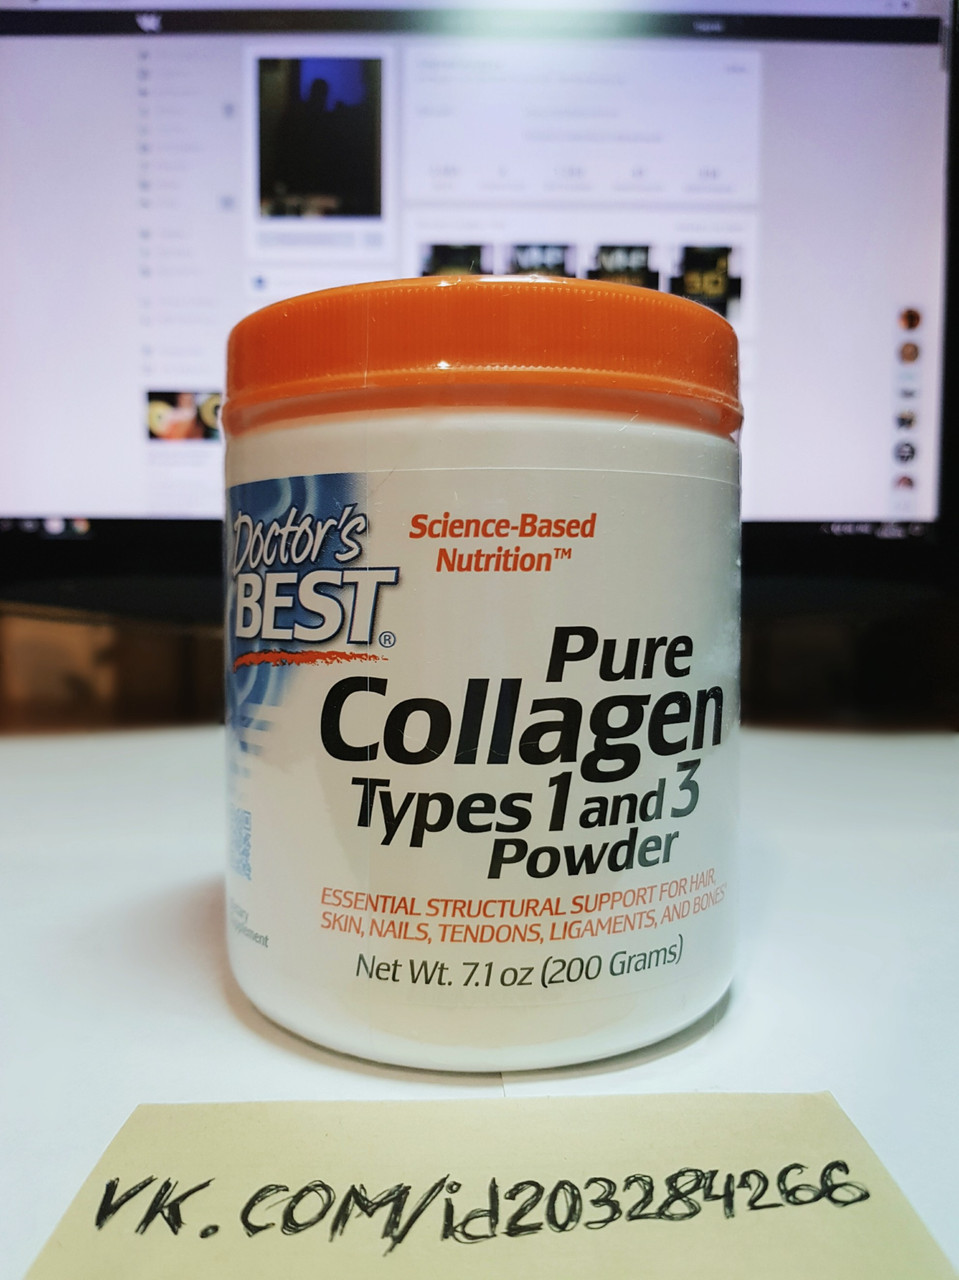 Коллаген для суставов кожи Doctor's Best Best Collagen Types 1 and 3 200г